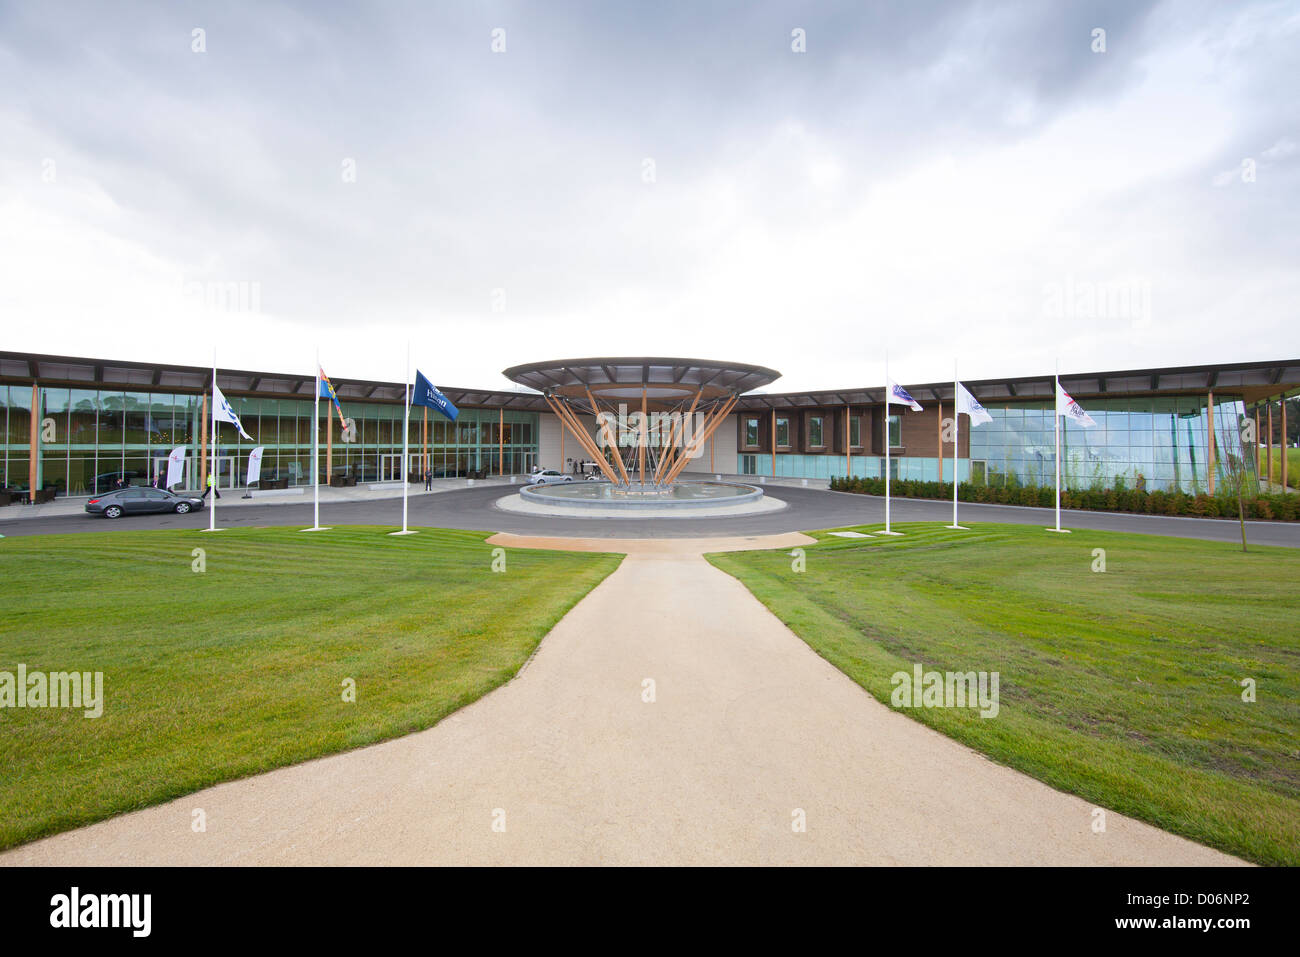 St George's Park hotel facilities, The FA Training Facility, Burton on Trent, Staffordshire, England - Stock Image